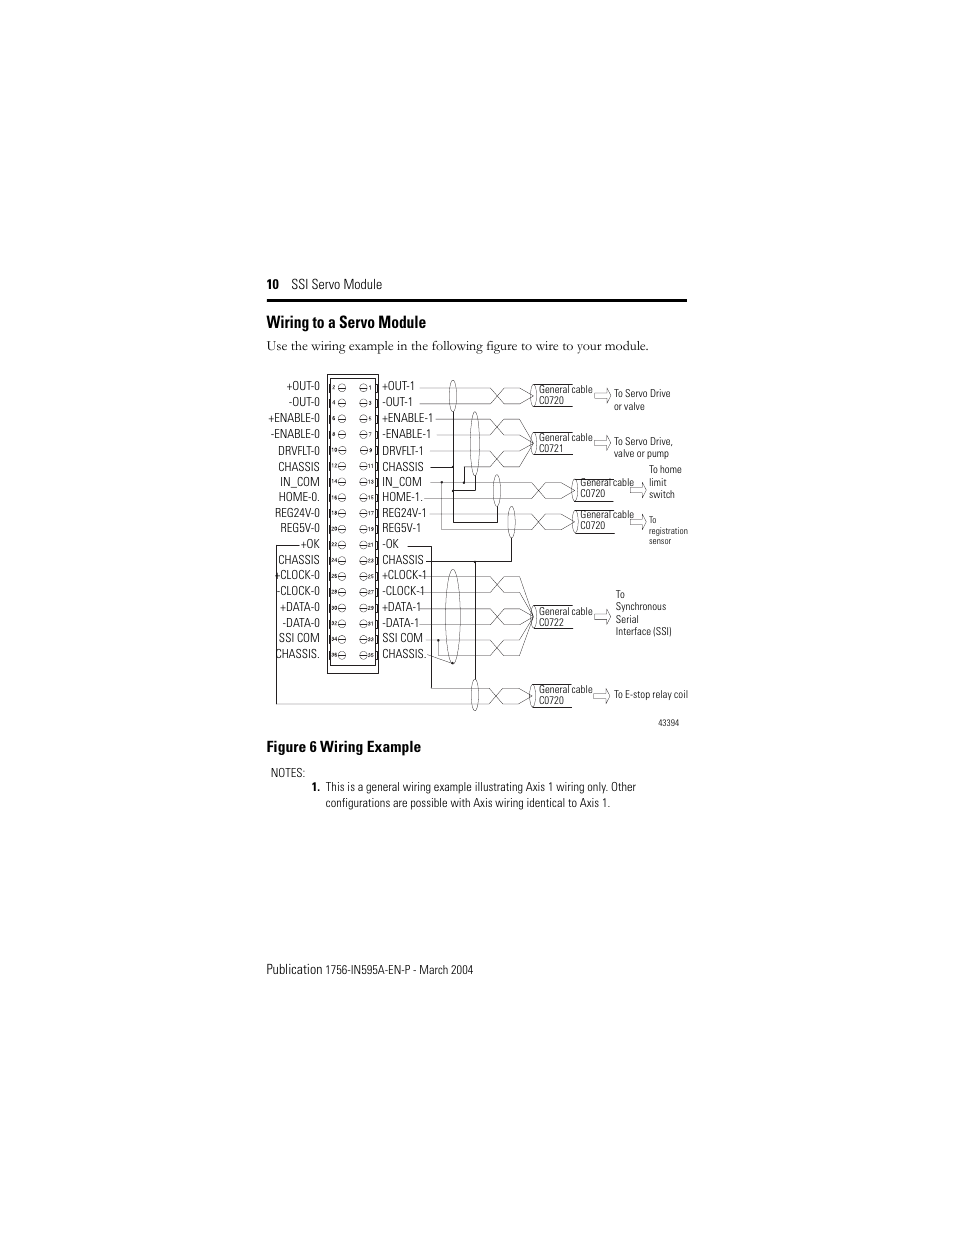 Wiring To A Servo Module Rockwell Automation 1756 M02as Motion General Home Installation Instructions User Manual Page 10 26